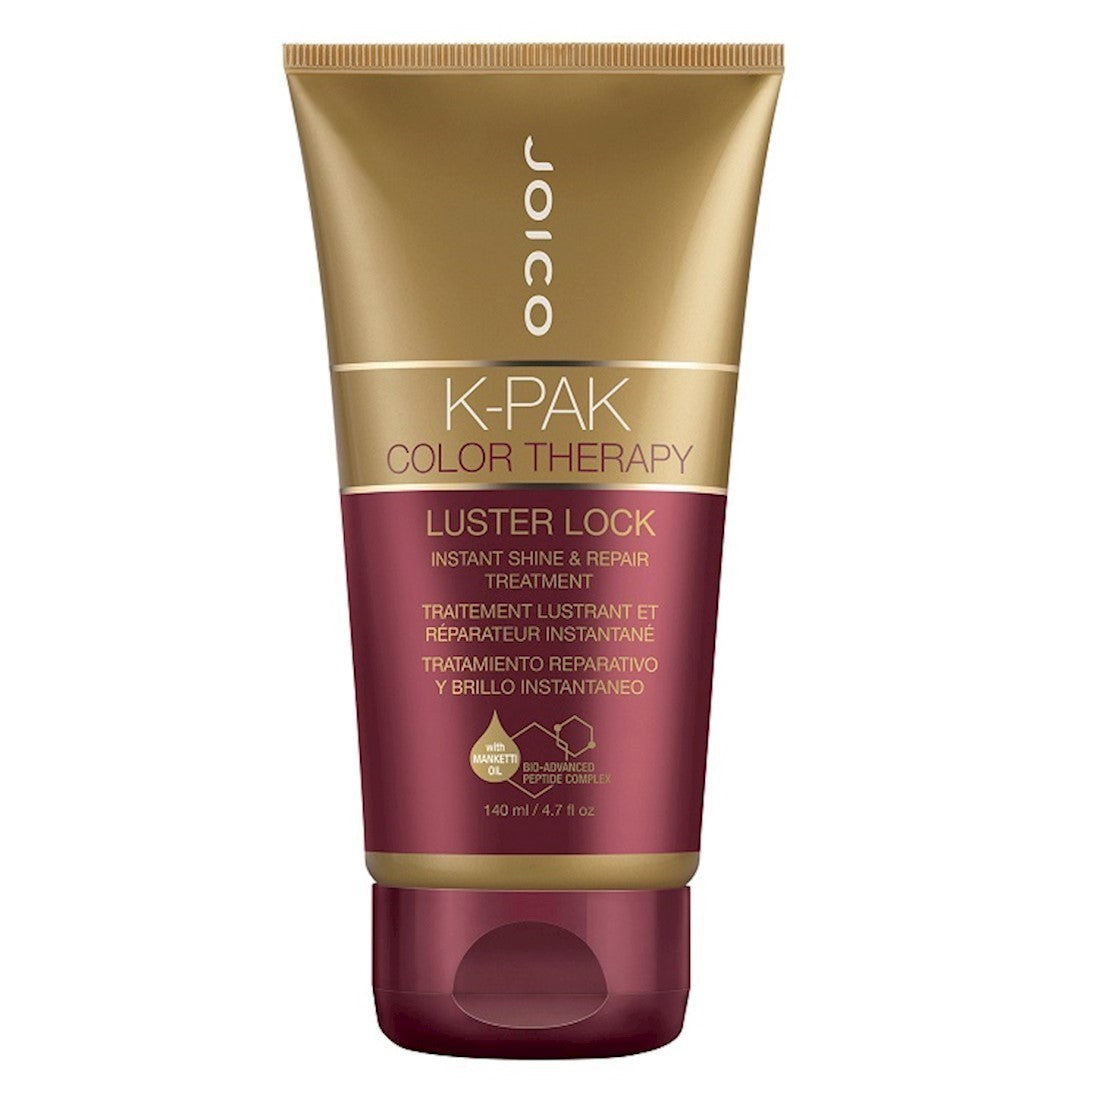 K-Pak Color Therapy Luster Lock 140ml